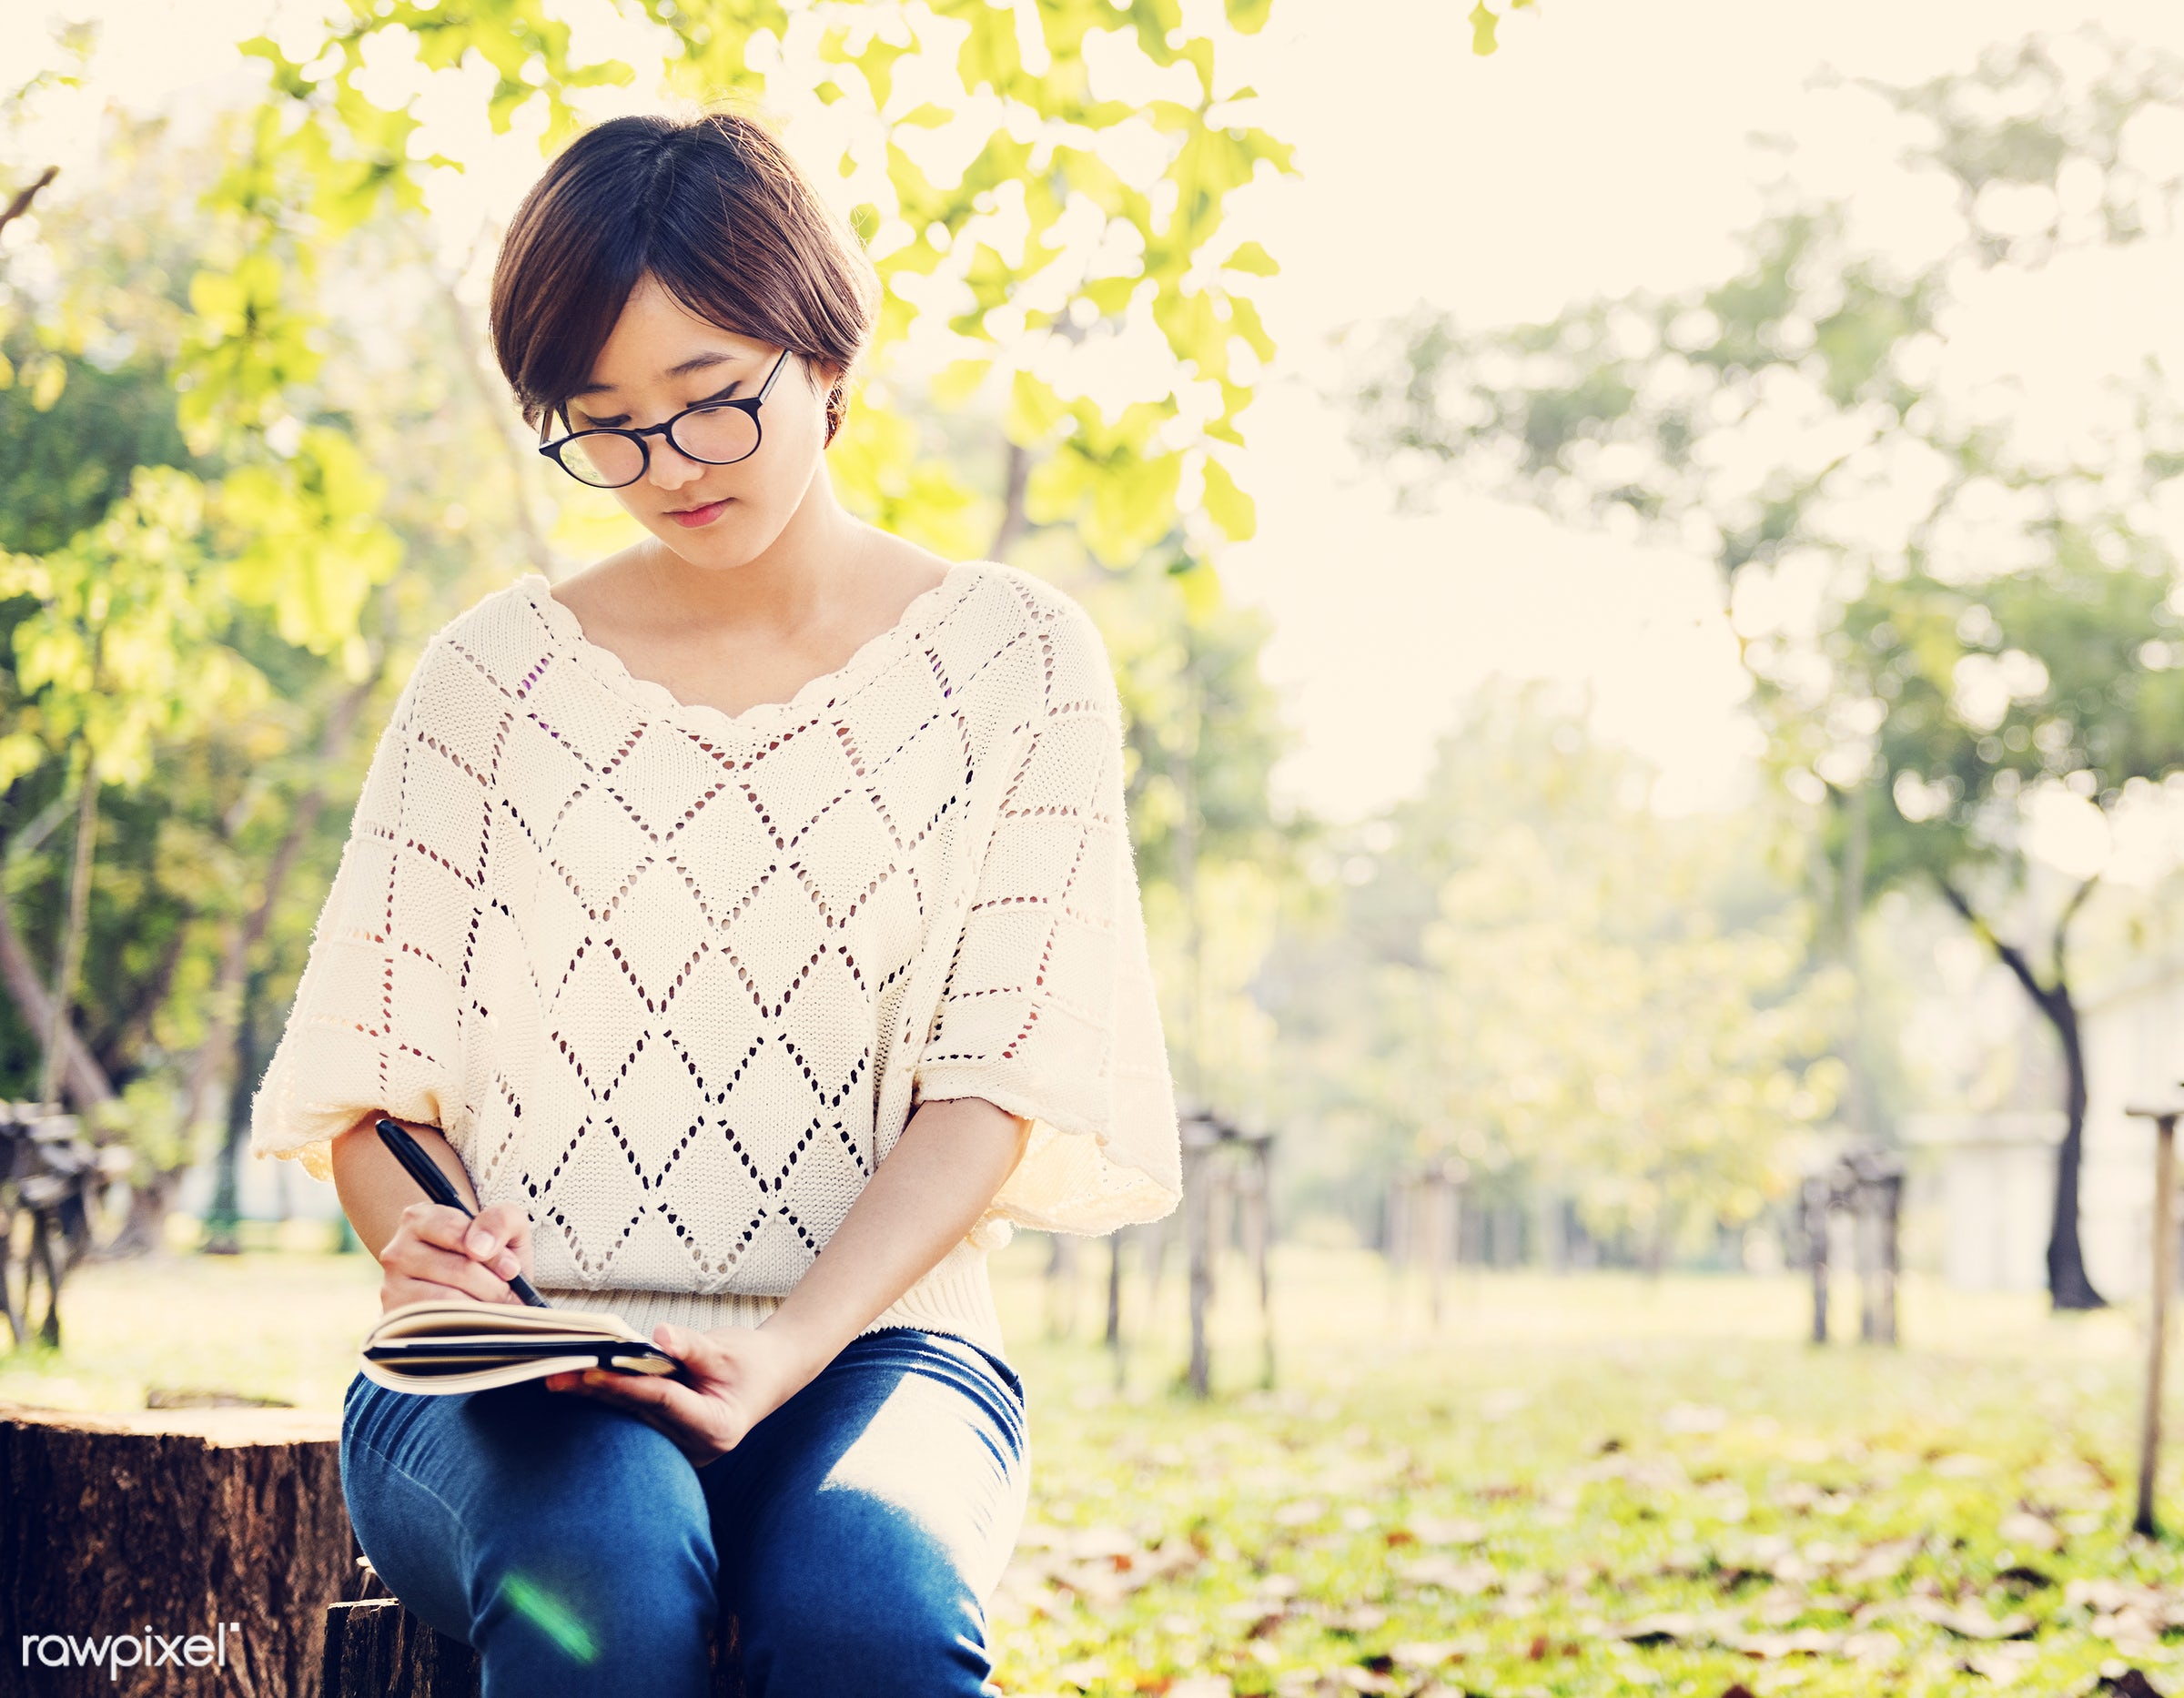 alone, asian, asian ethnicity, beautiful, book, casual, diary, education, environment, environmental, garden, girl, glasses...